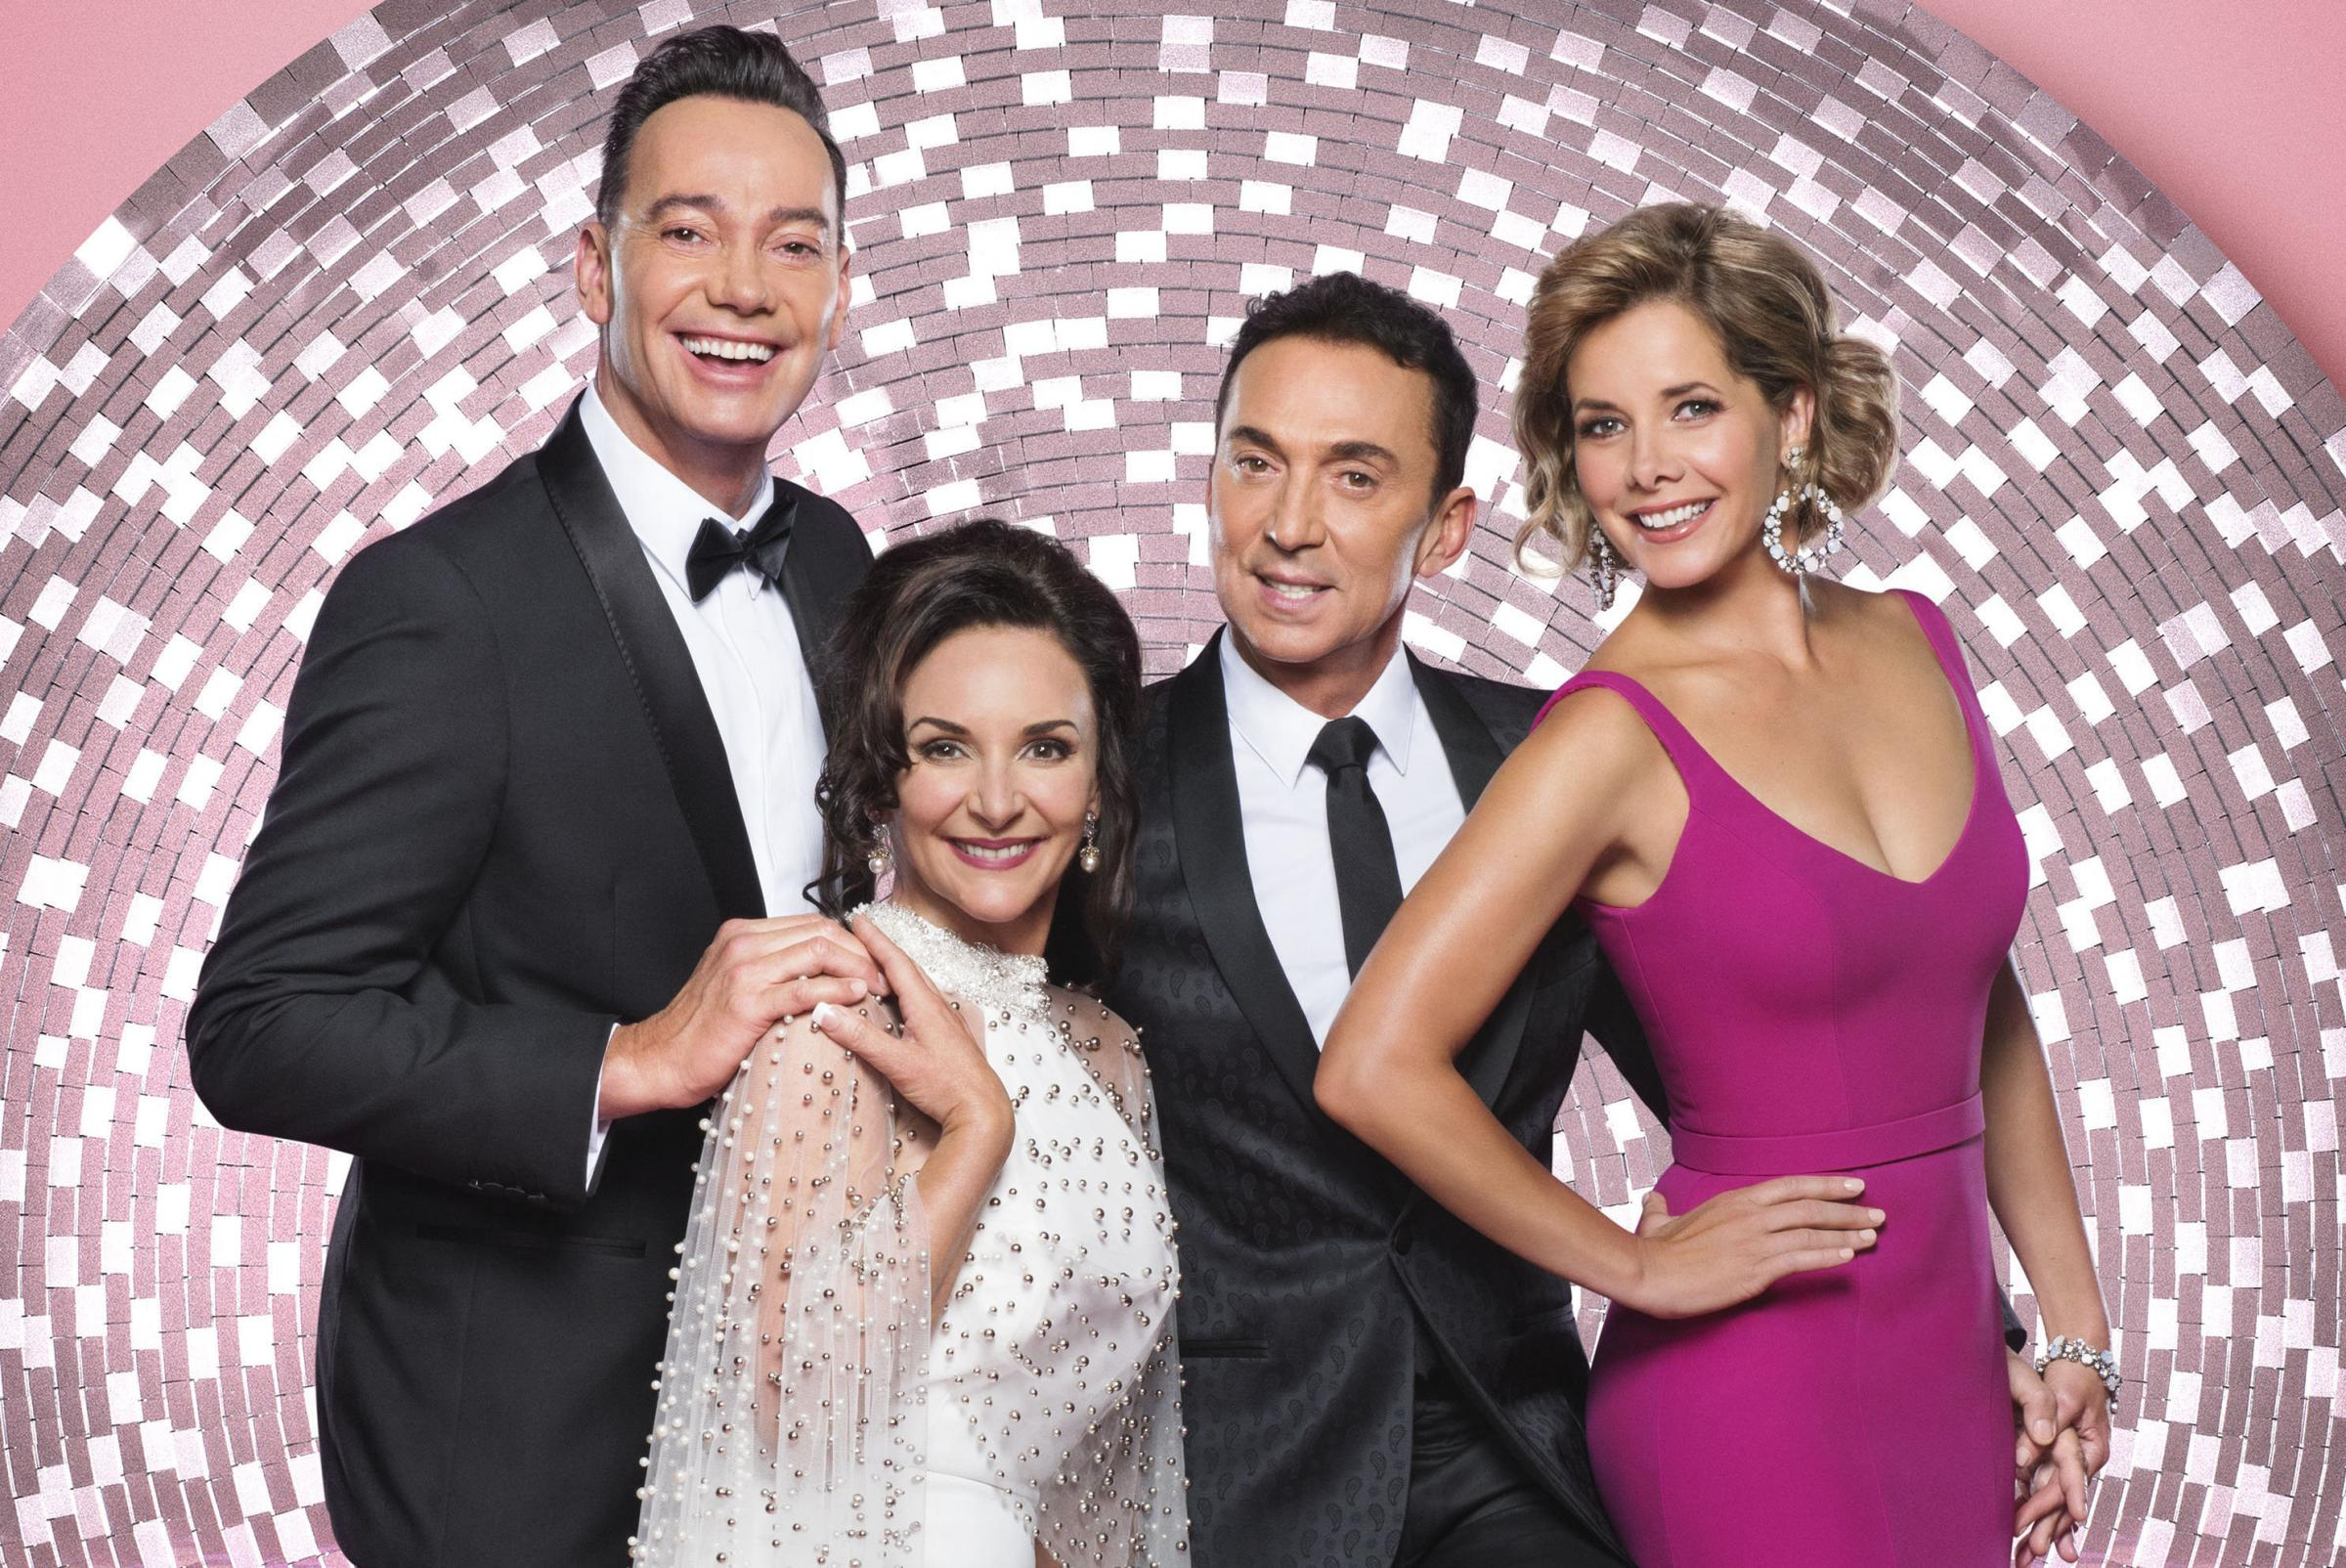 From left to right: Judges Craig Revel Horwood, Shirley Ballas, Bruno Tonioli, and Dame Darcey Bussell return